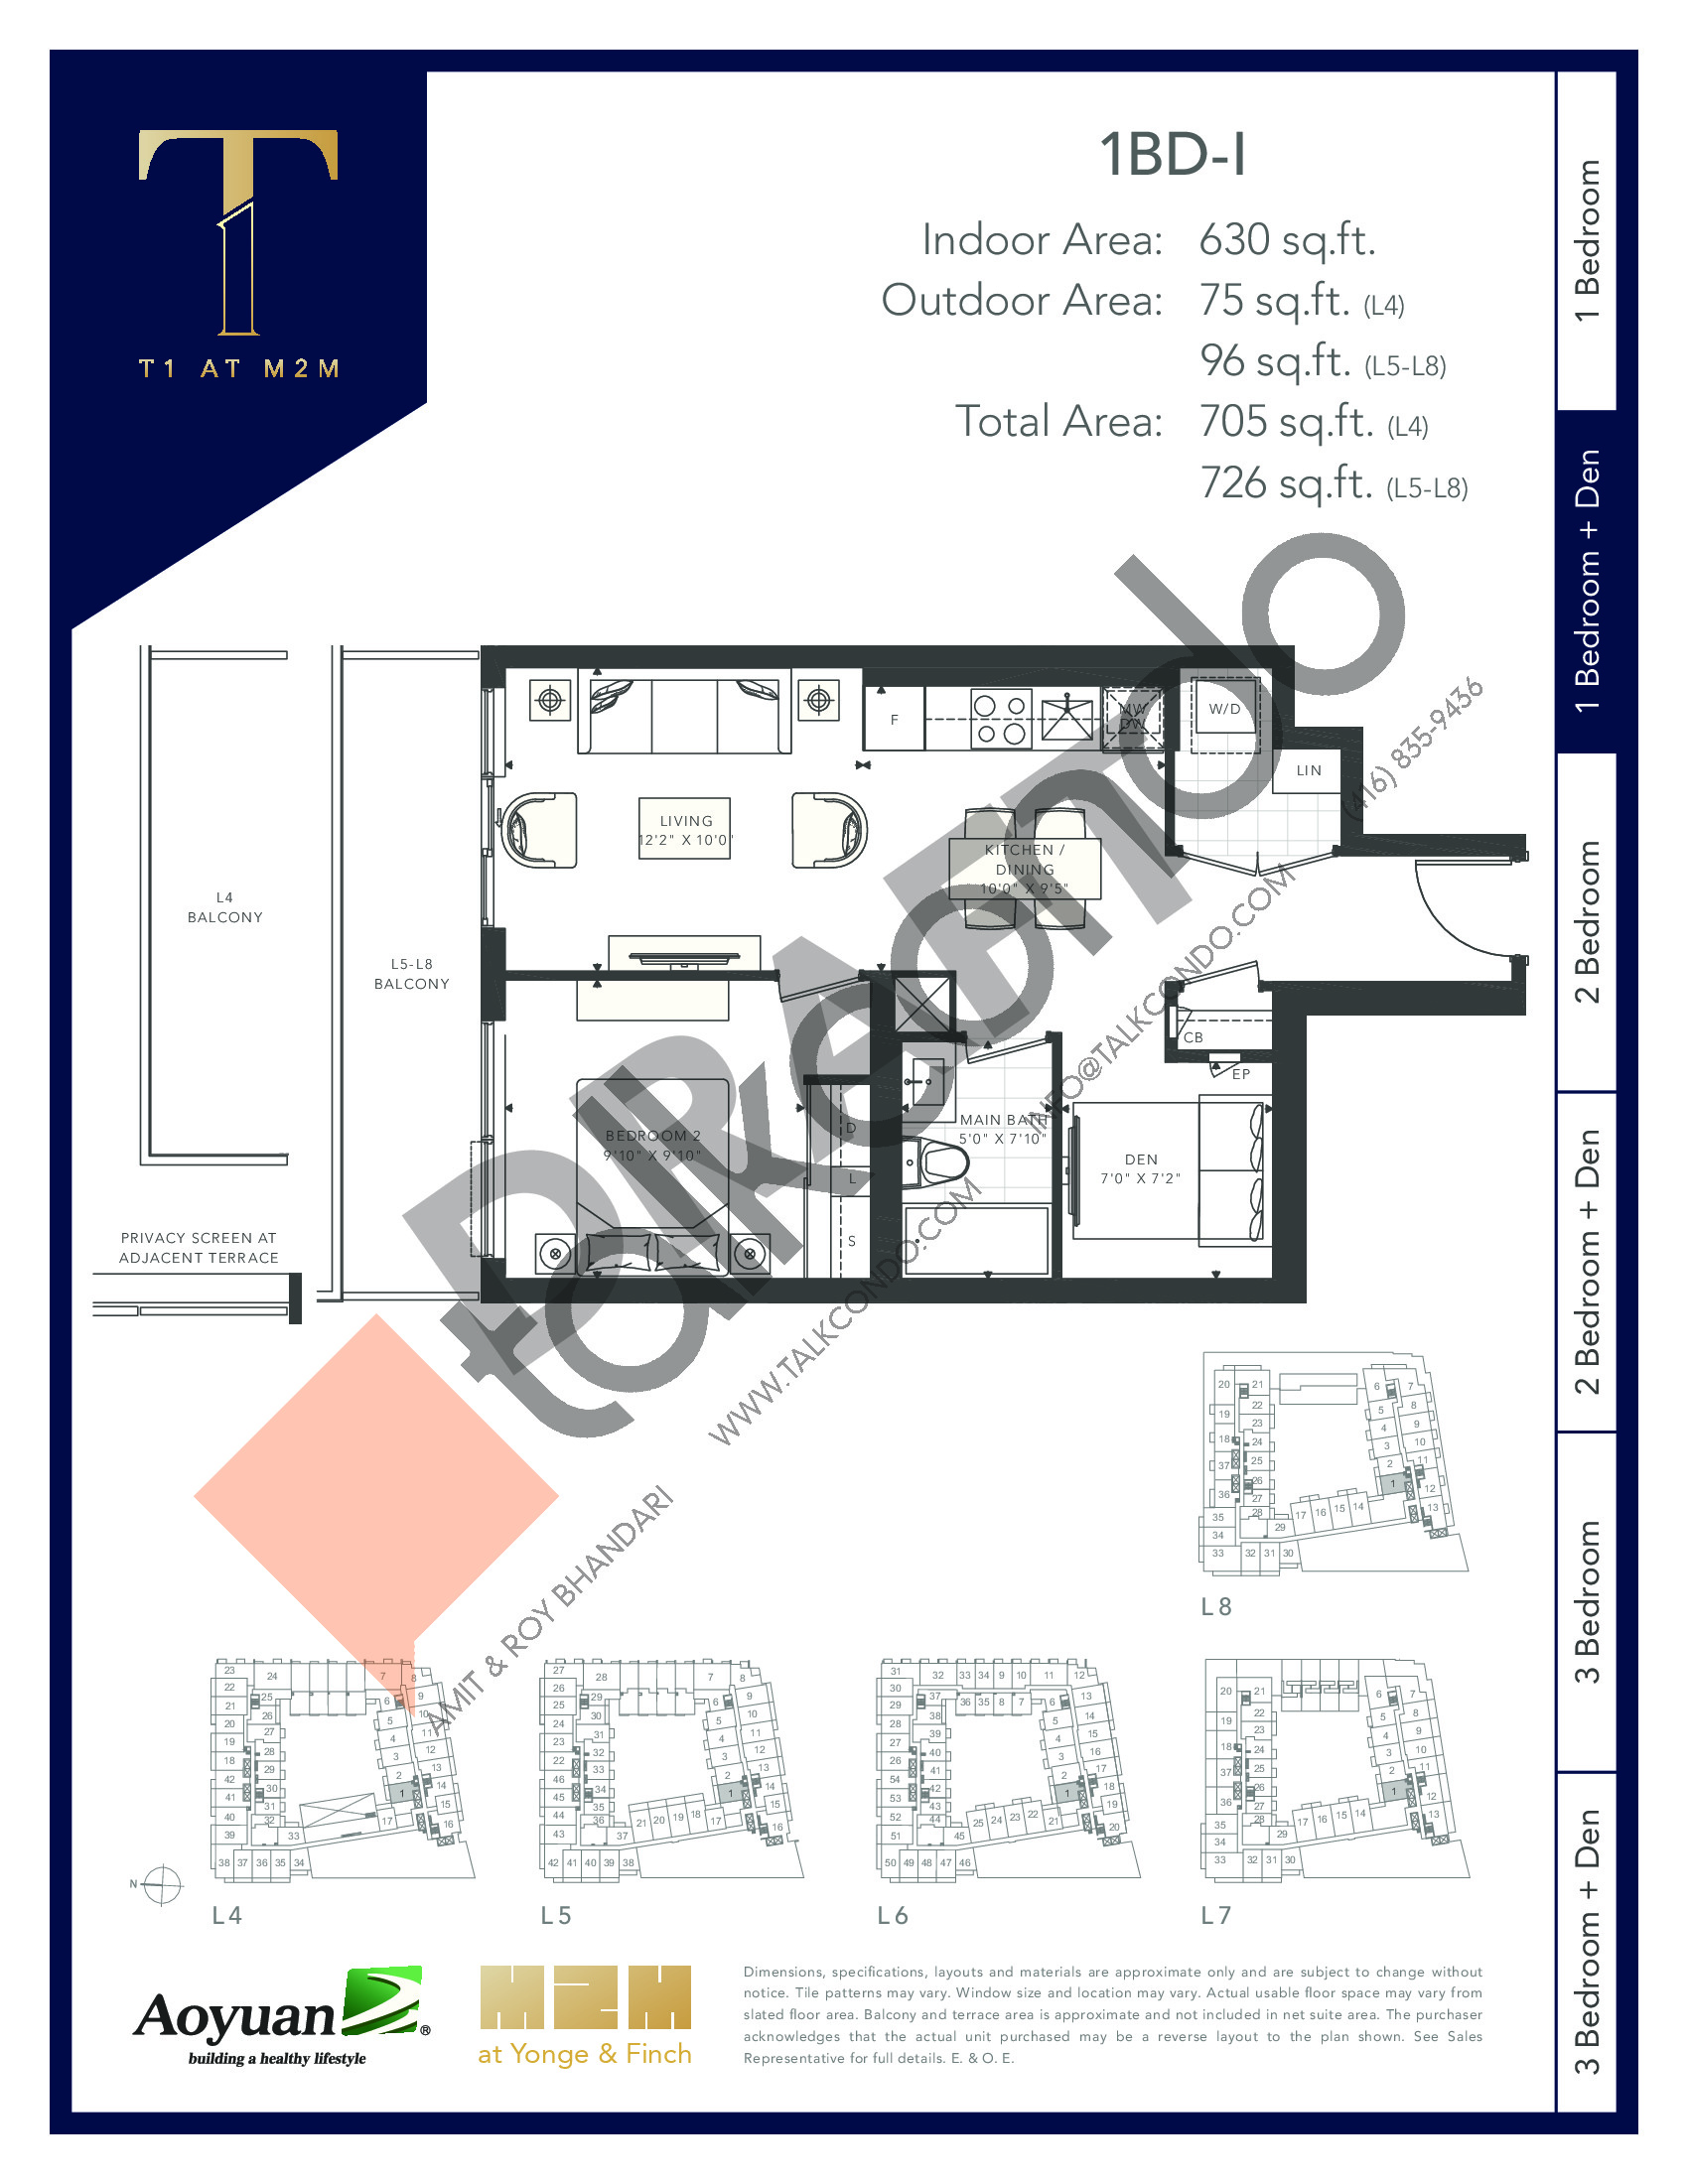 1BD-I (Podium) Floor Plan at T1 at M2M Condos - 630 sq.ft